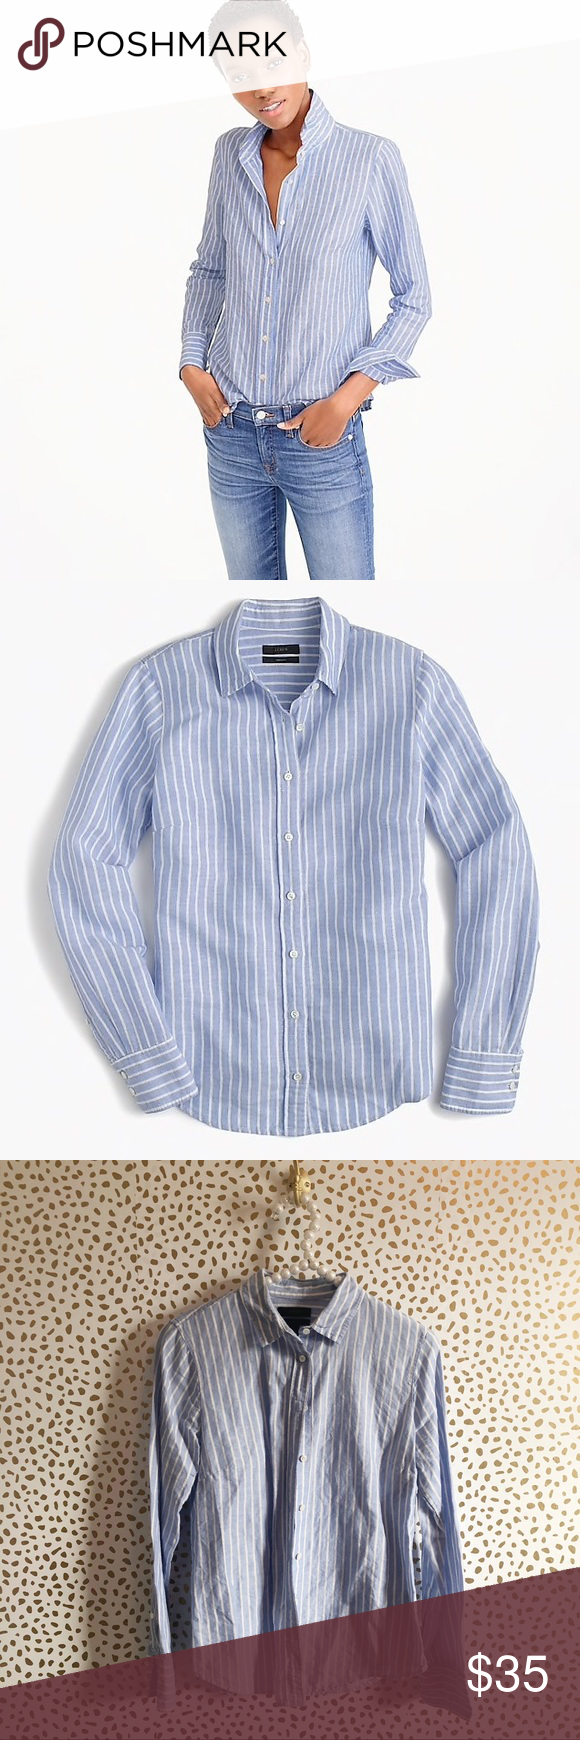 f3f3690a0da J. Crew Linen Striped Perfect Shirt Excellent pre owned condition! Size 6P.  Blue